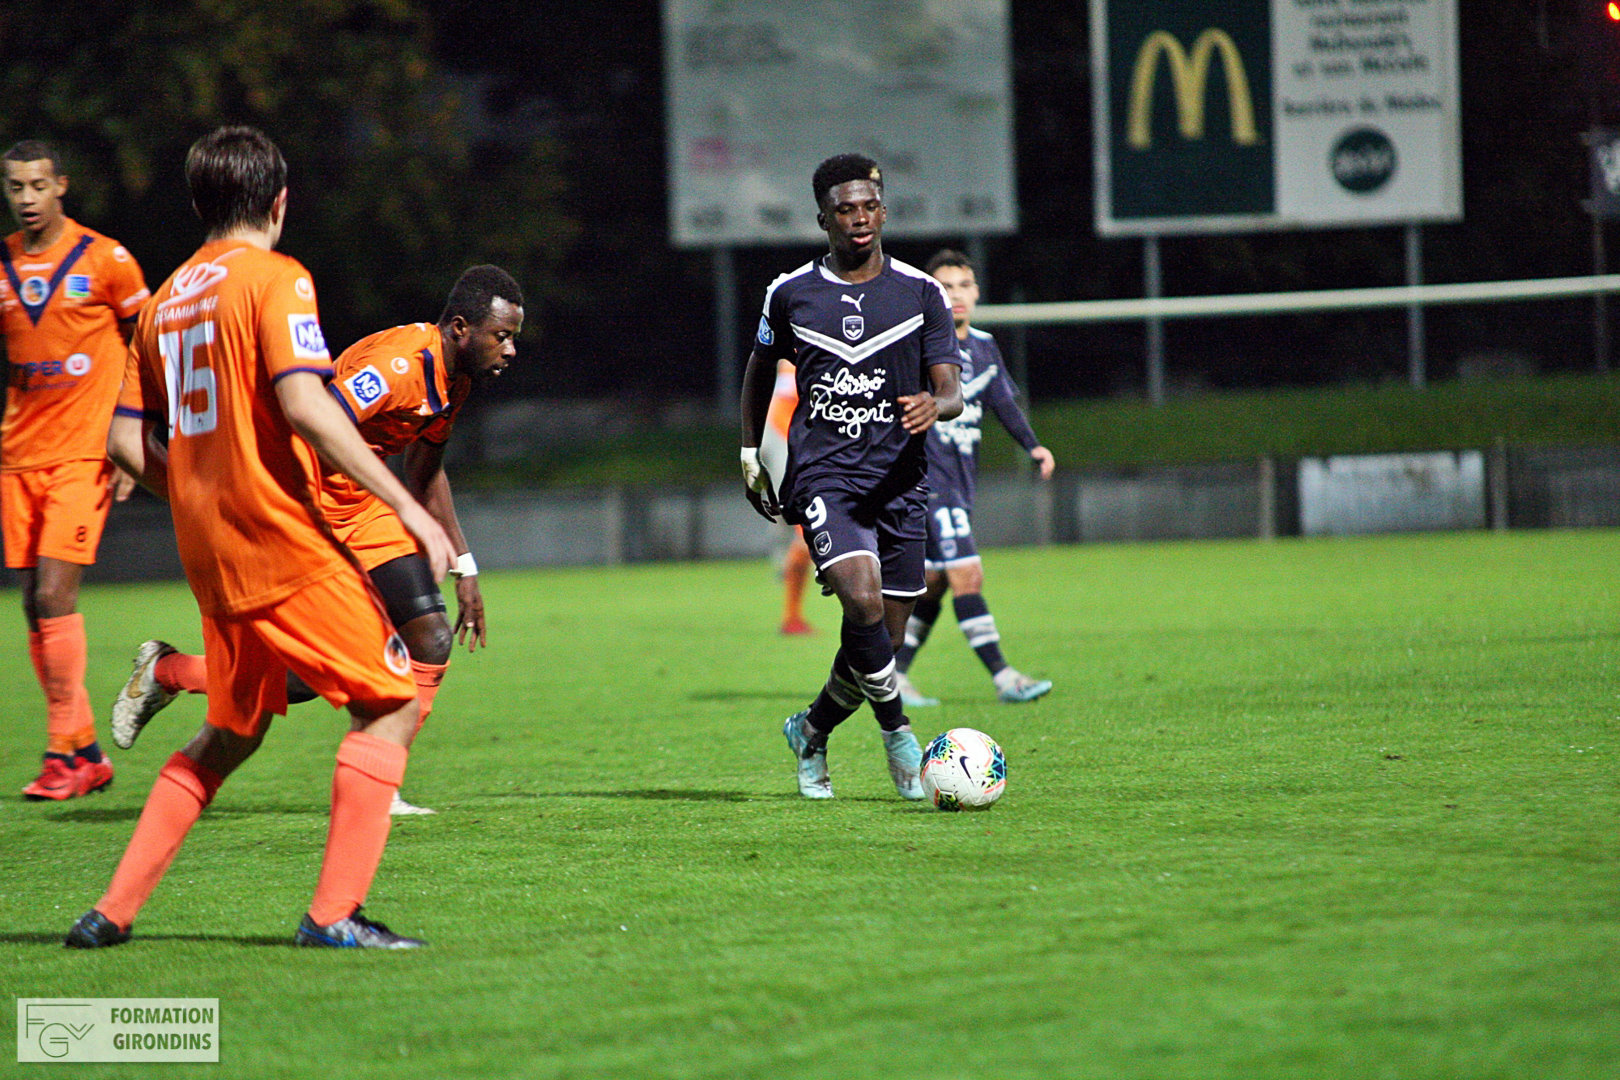 Cfa Girondins : Déplacement au Pays Basque - Formation Girondins